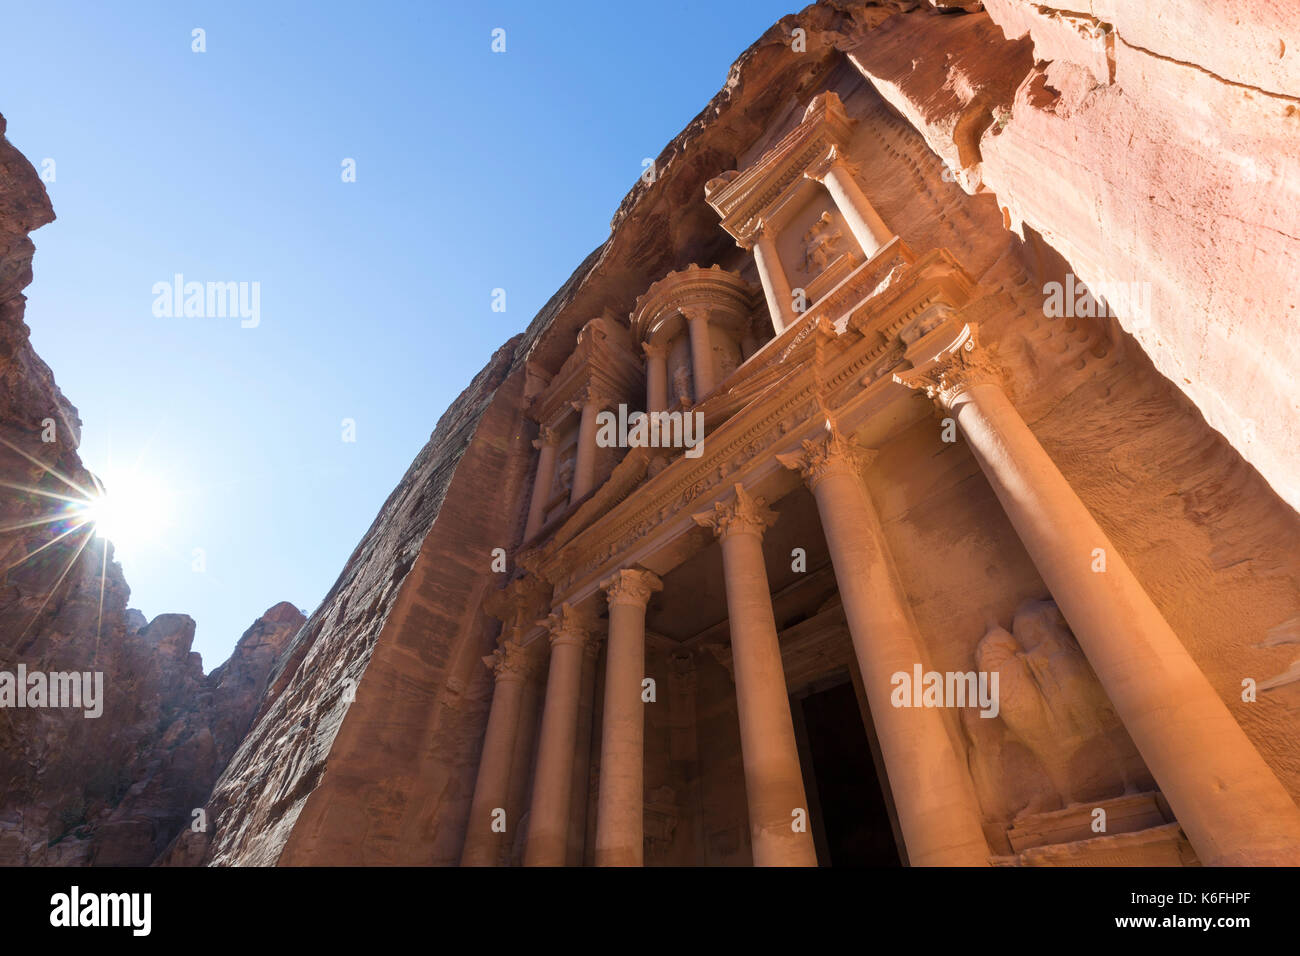 Al Khazneh or The Treasury at Petra, Jordan-- it is a symbol of Jordan, as well as Jordan's most-visited tourist attraction - Stock Image